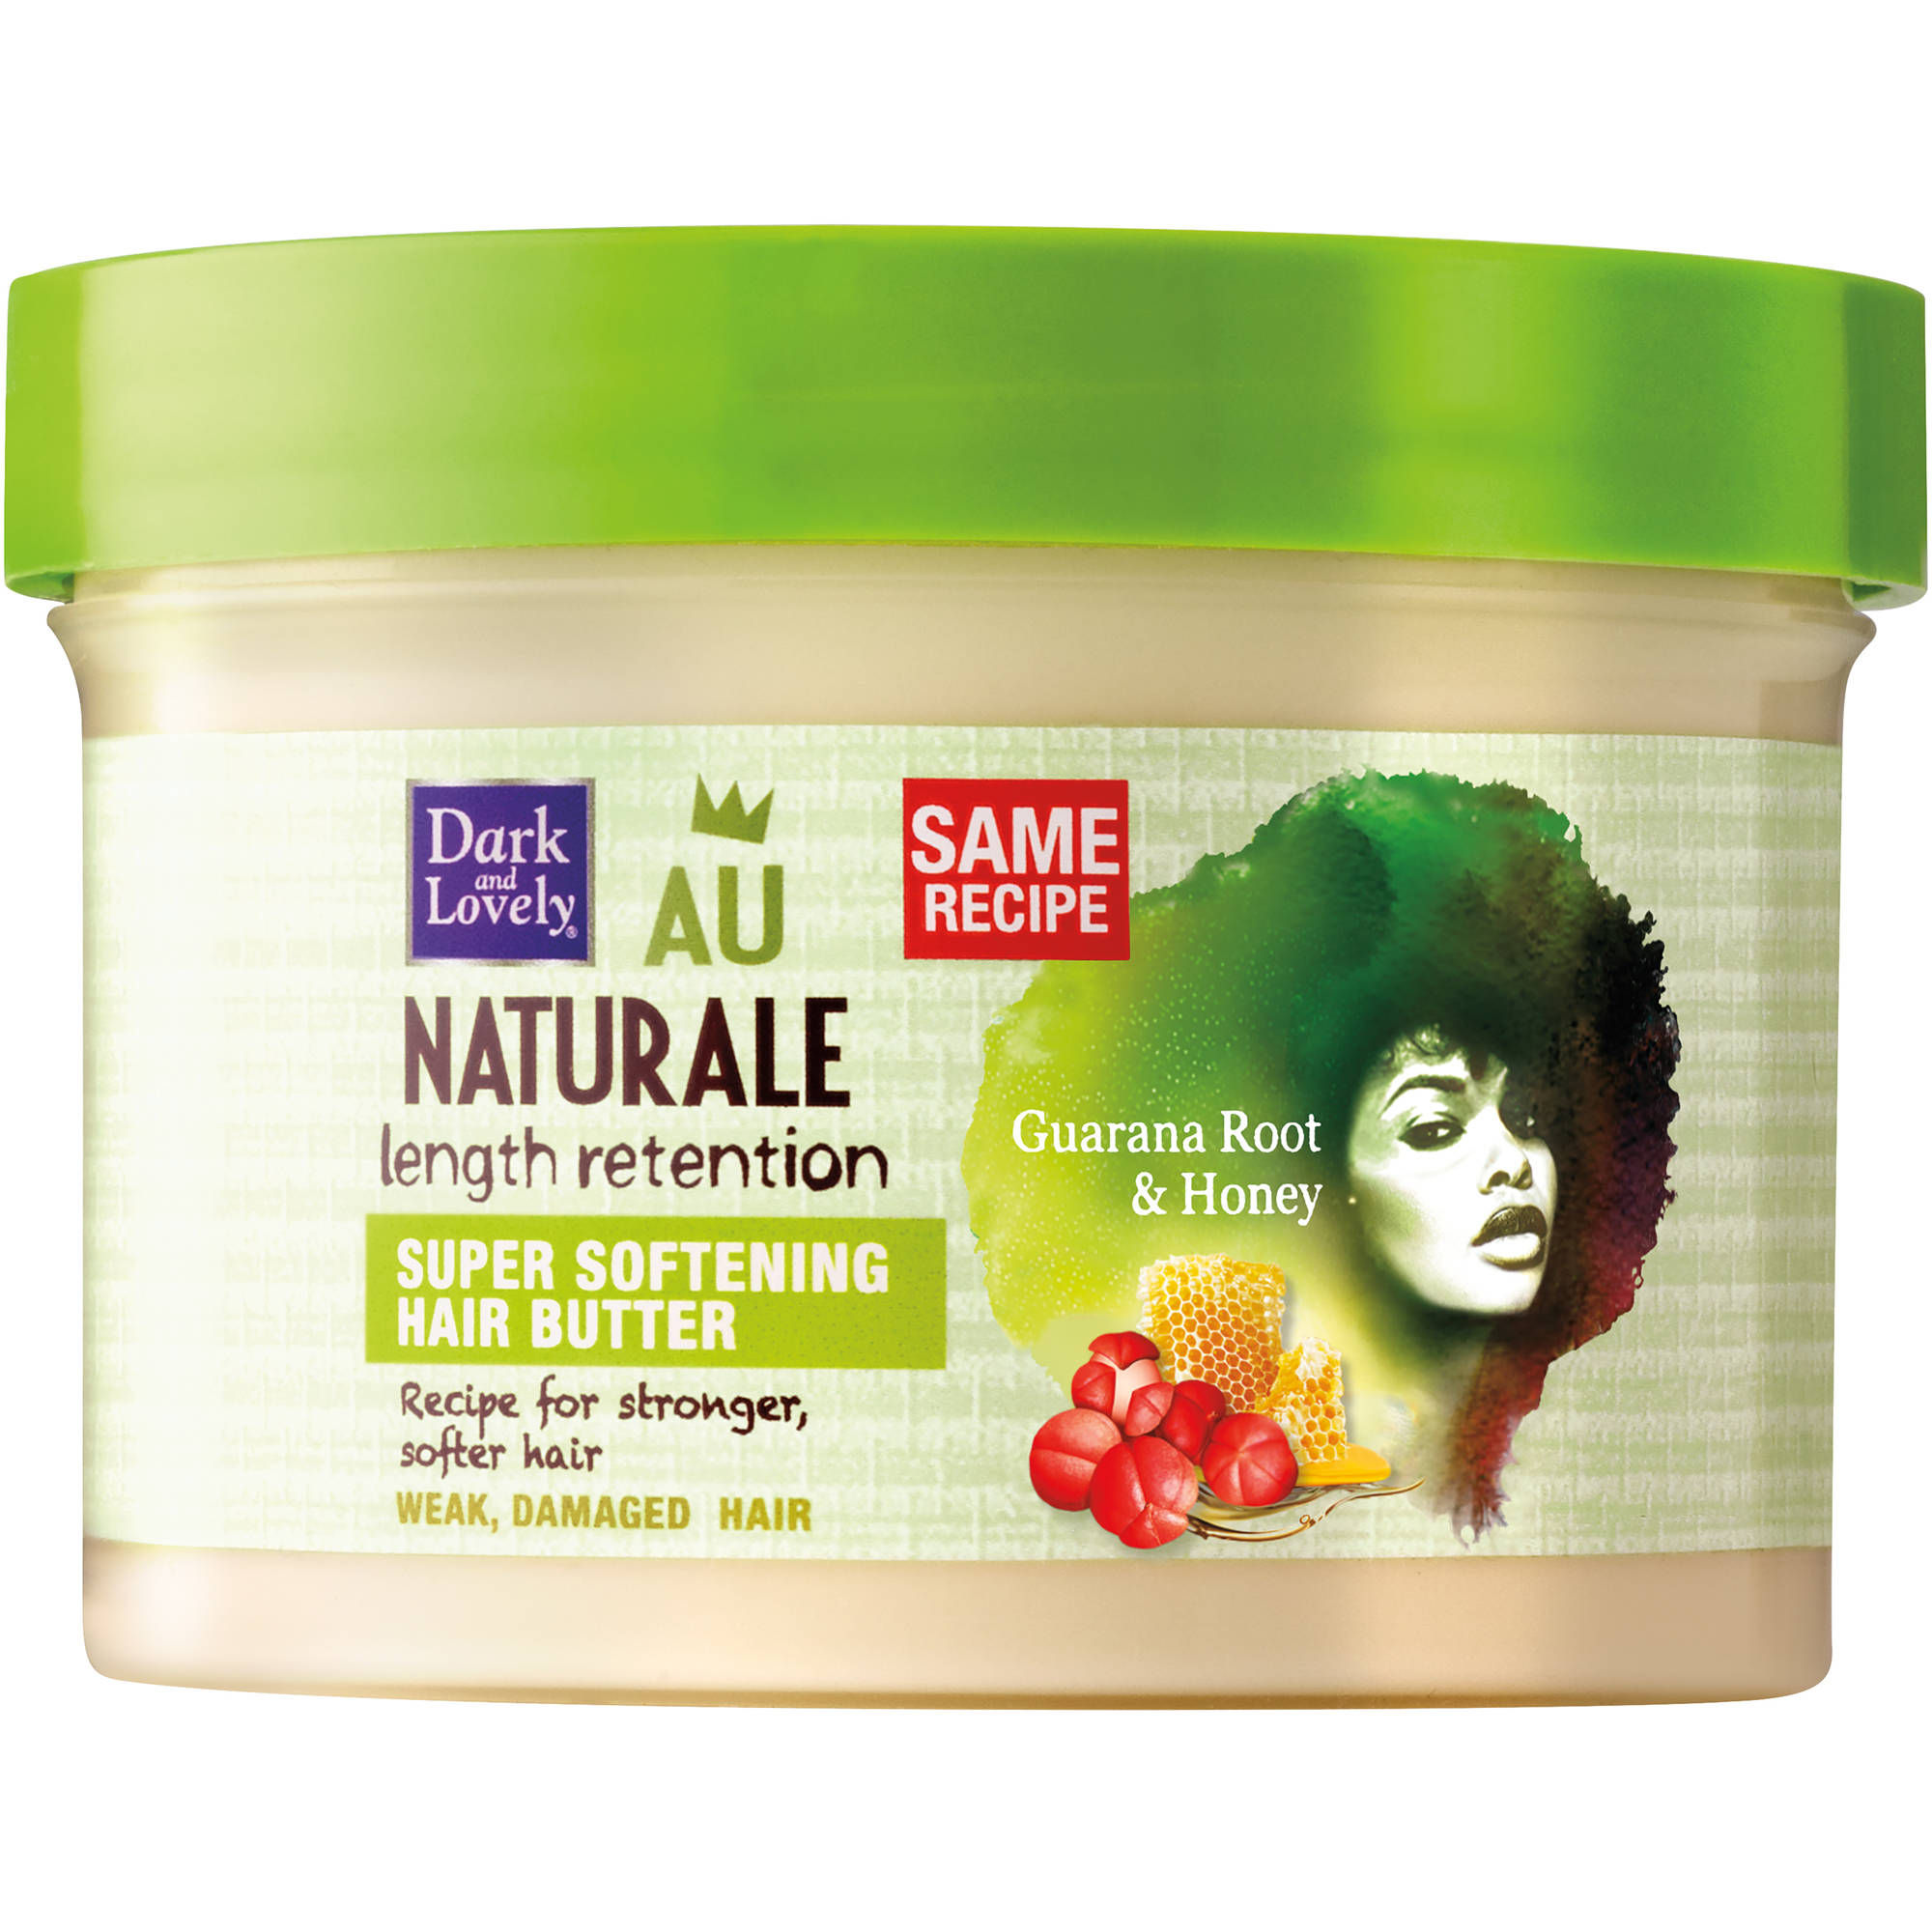 SoftSheen-Carson Dark and Lovely Au Naturale Length Retention Super Softening Hair Butter